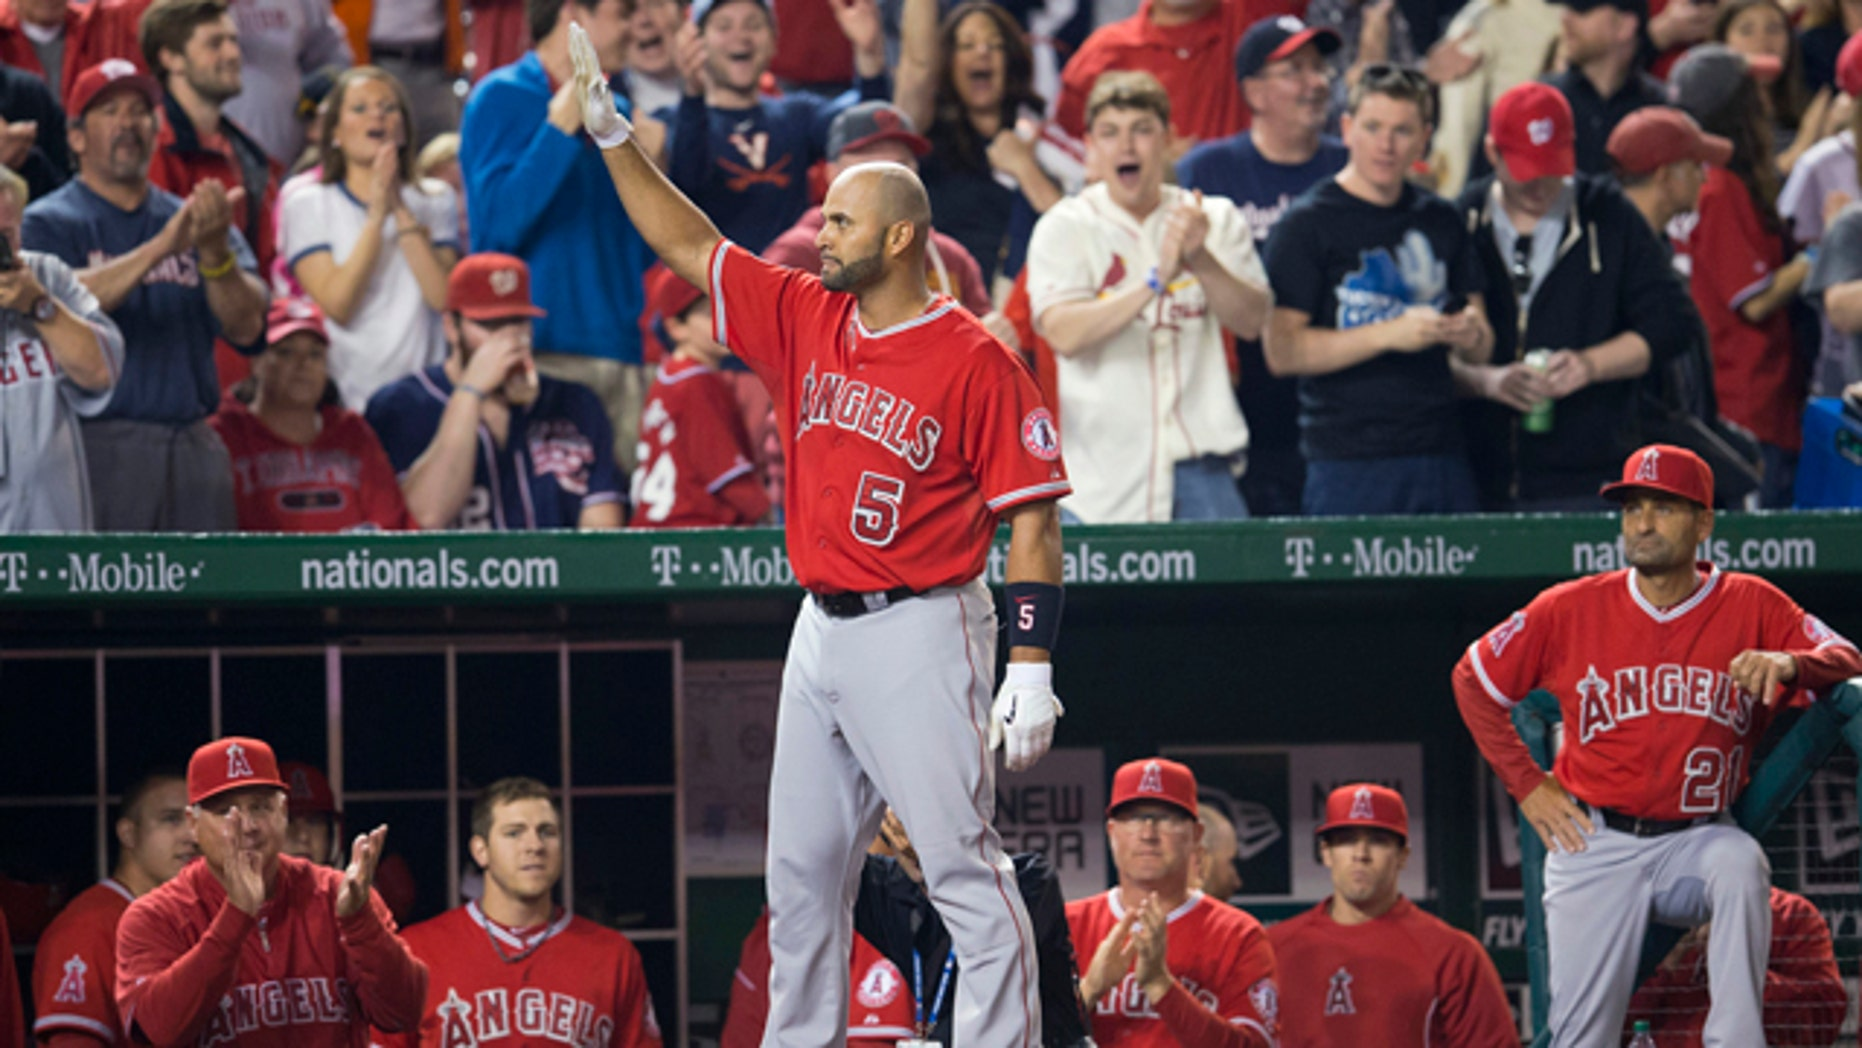 April 22, 2014: Albert Pujols (5) steps out of the visitors' dugout to acknowledge the applause from the crowd after hitting his 500th career home run off the Washington Nationals' Taylor Jordan in the fifth inning of the Los Angeles Angels' 7-2 win. (AP)